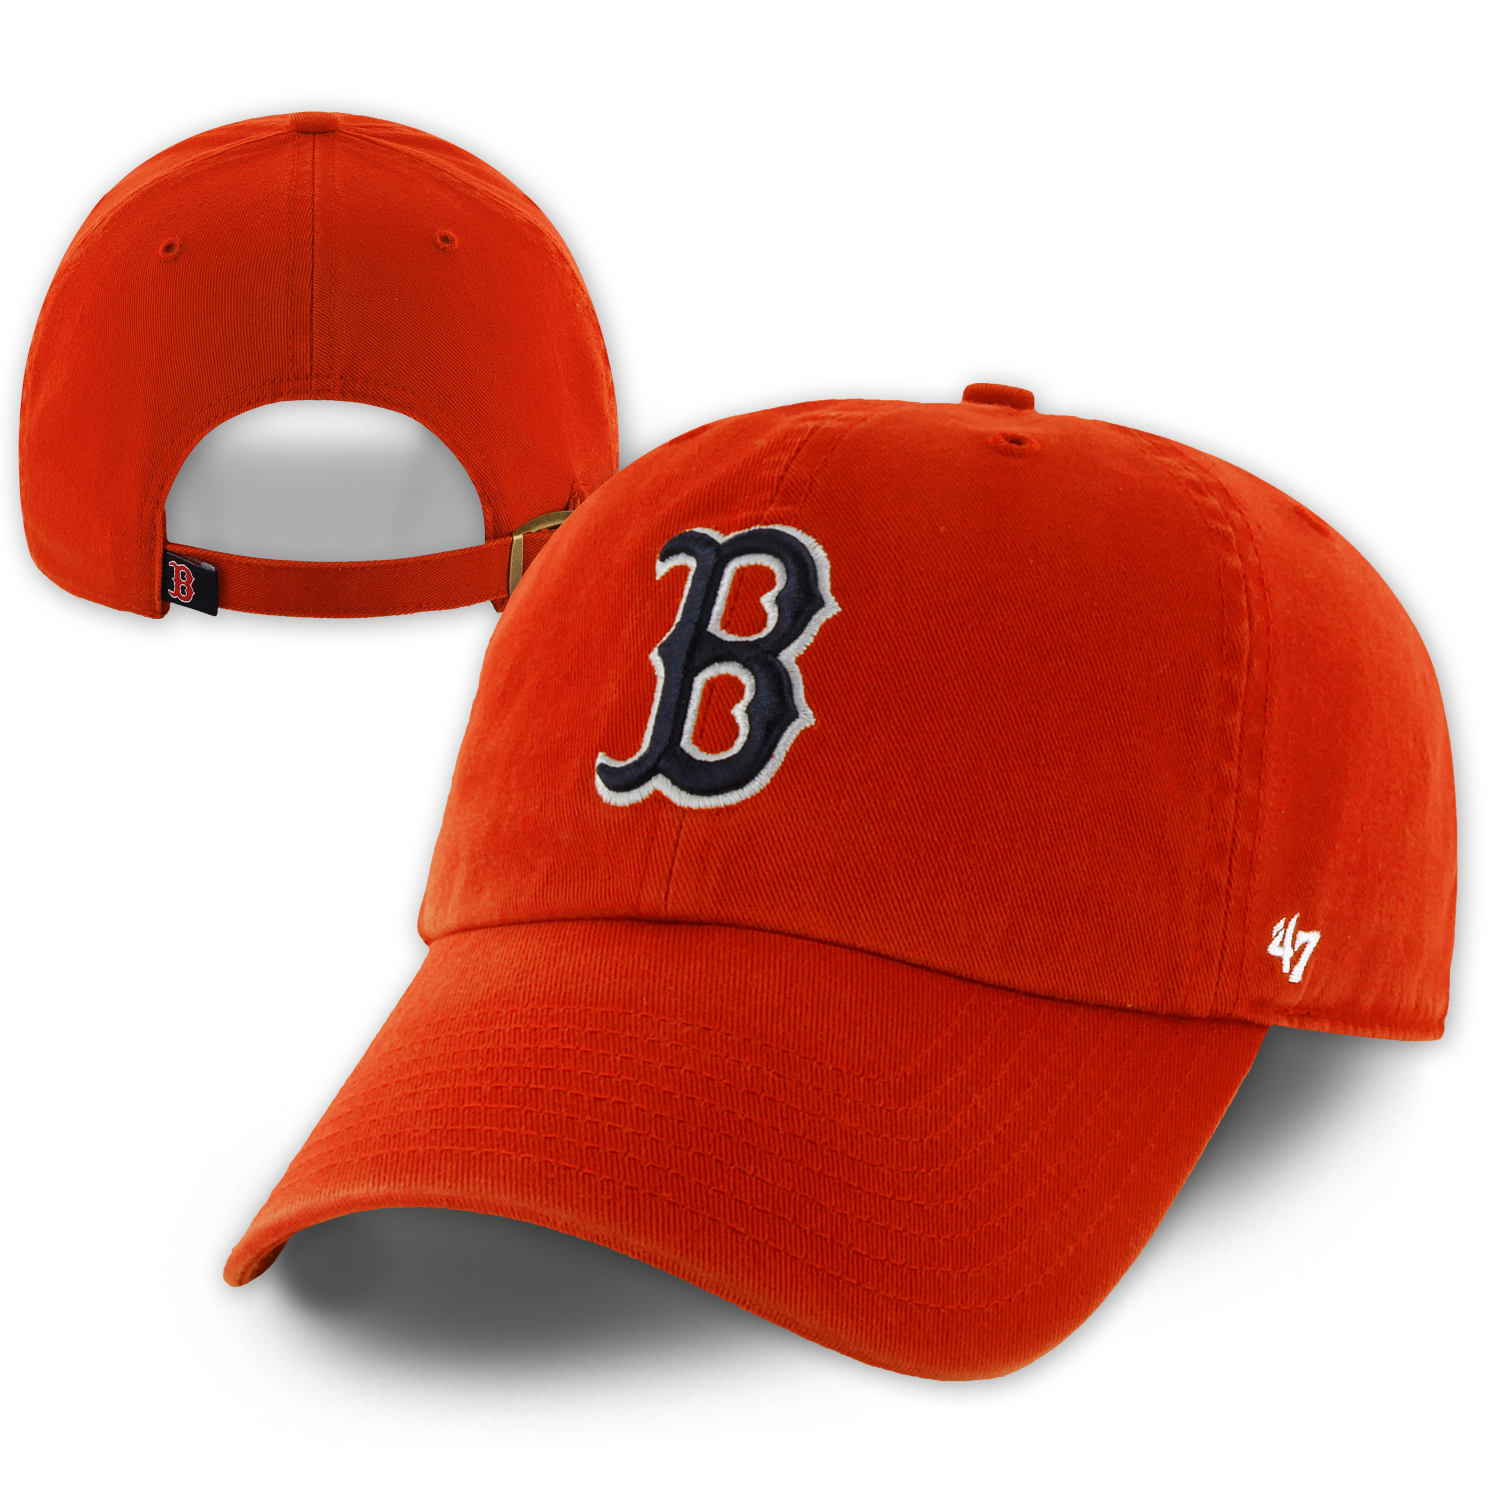 47 Clean Up Orange Fitted Hats Clean Up Ball Cap